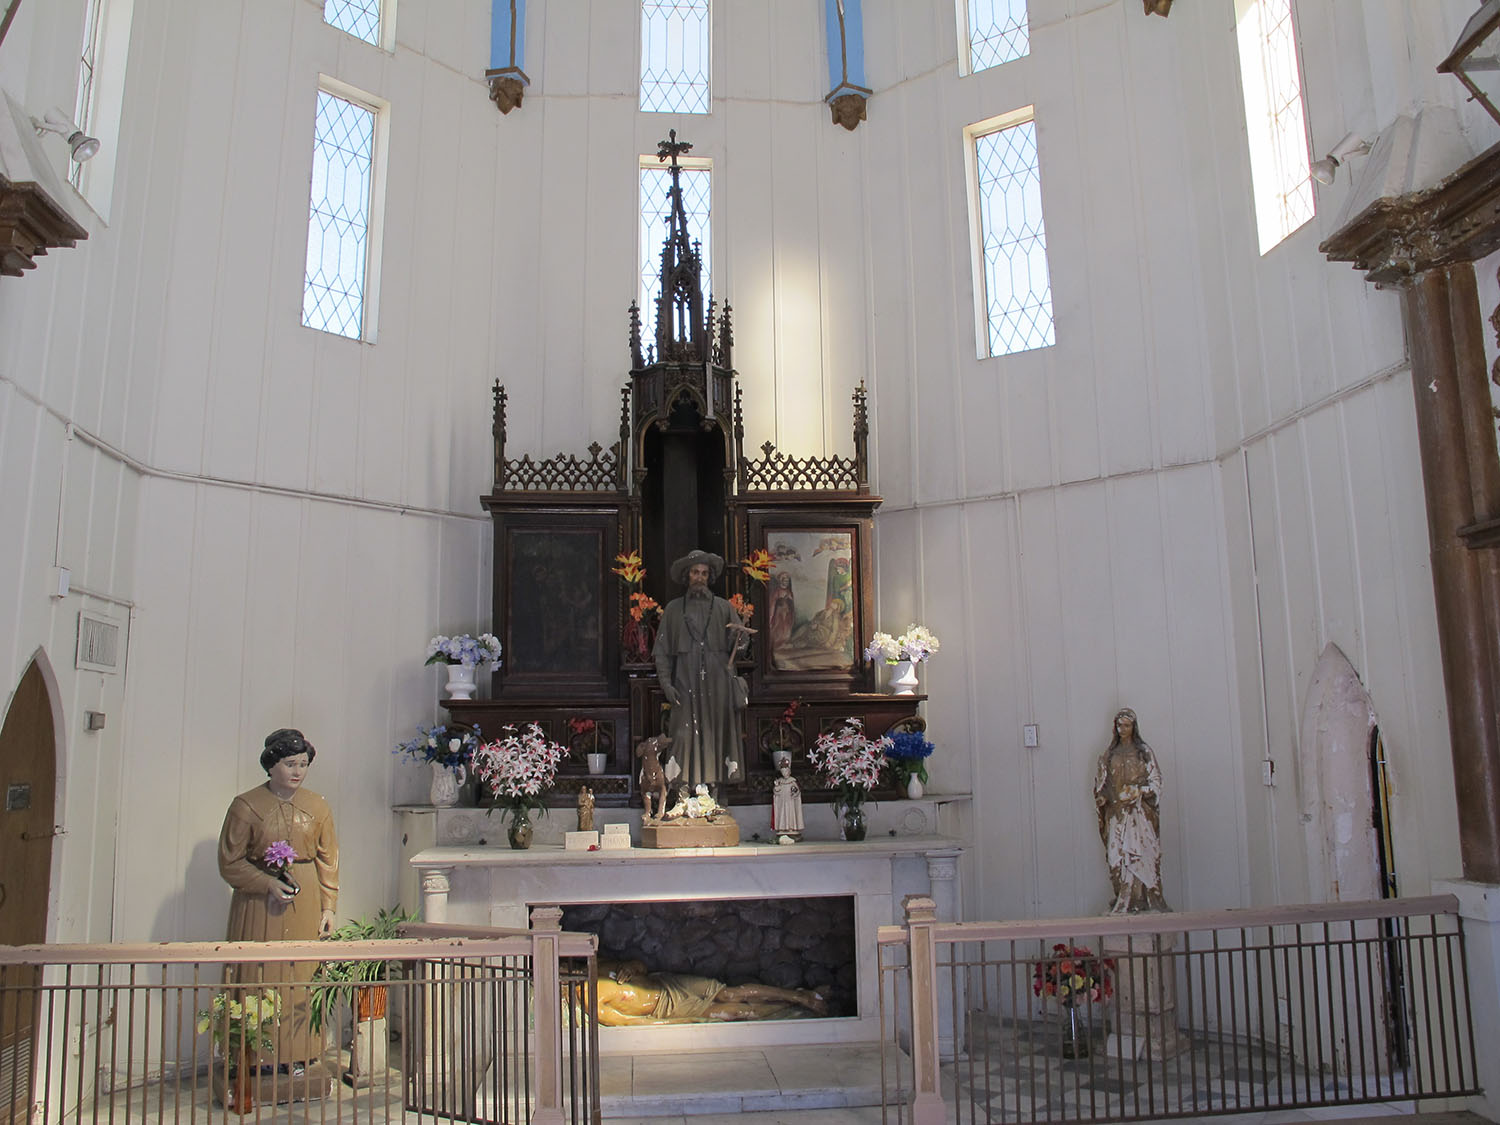 View of the main room of the Shrine of St. Roch with altar and statue of the saint, the door to the small chapel can be seen at the right